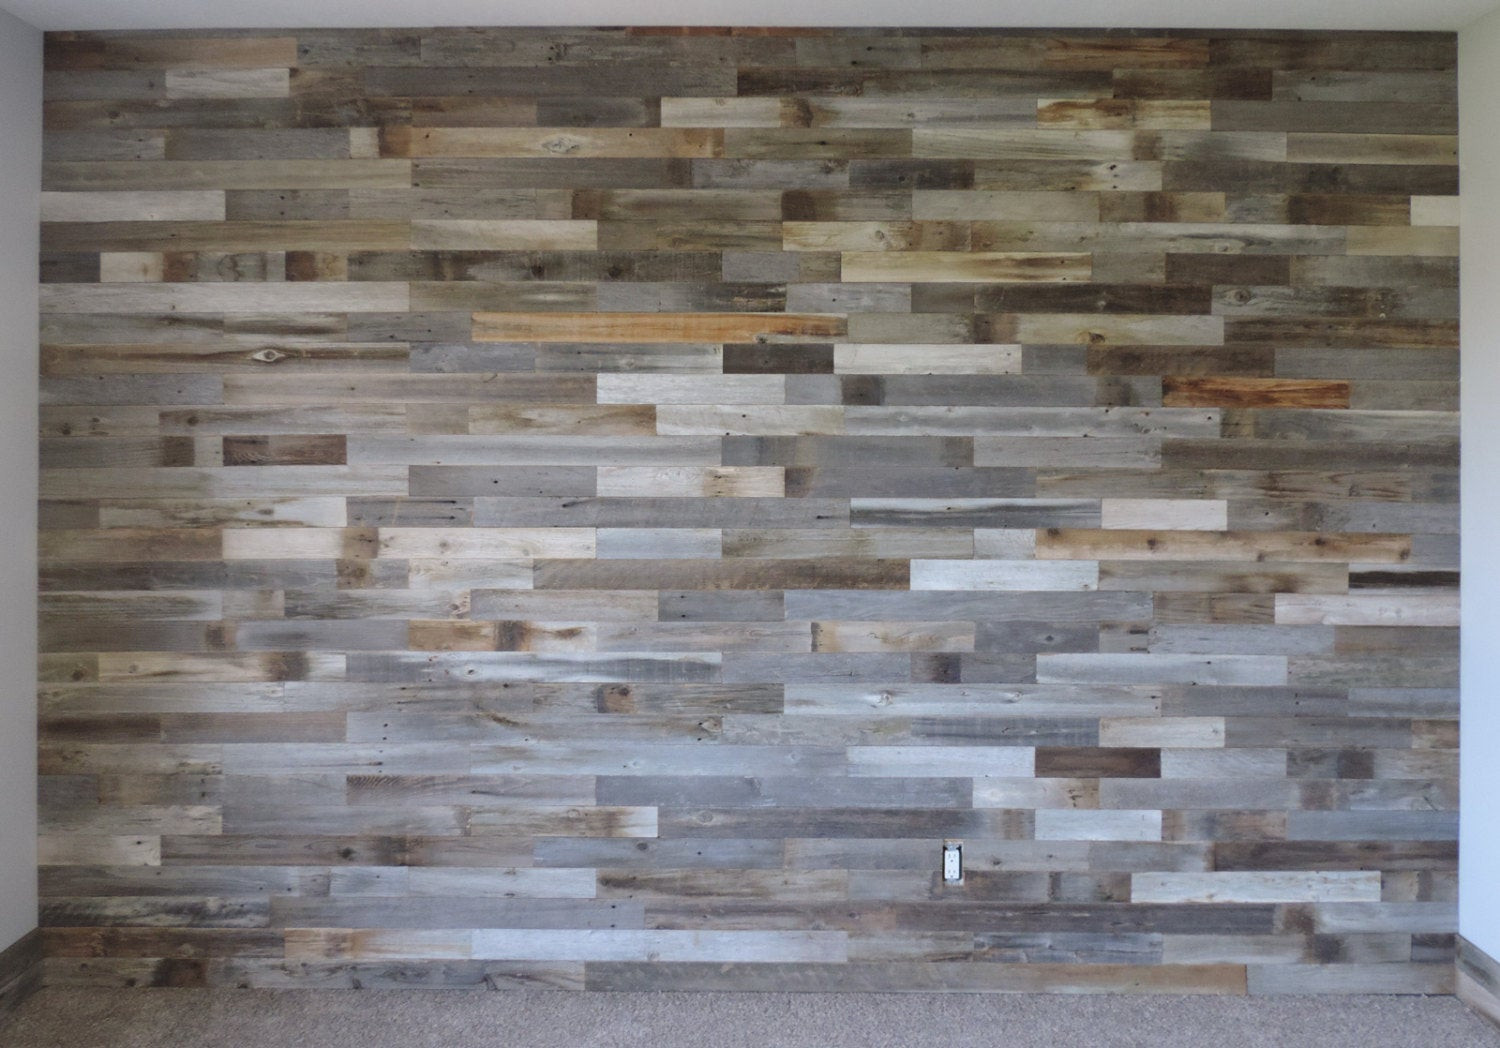 Best ideas about DIY Barnwood Wall . Save or Pin Reclaimed Wood Wall Paneling DIY asst 3 inch boards by Now.